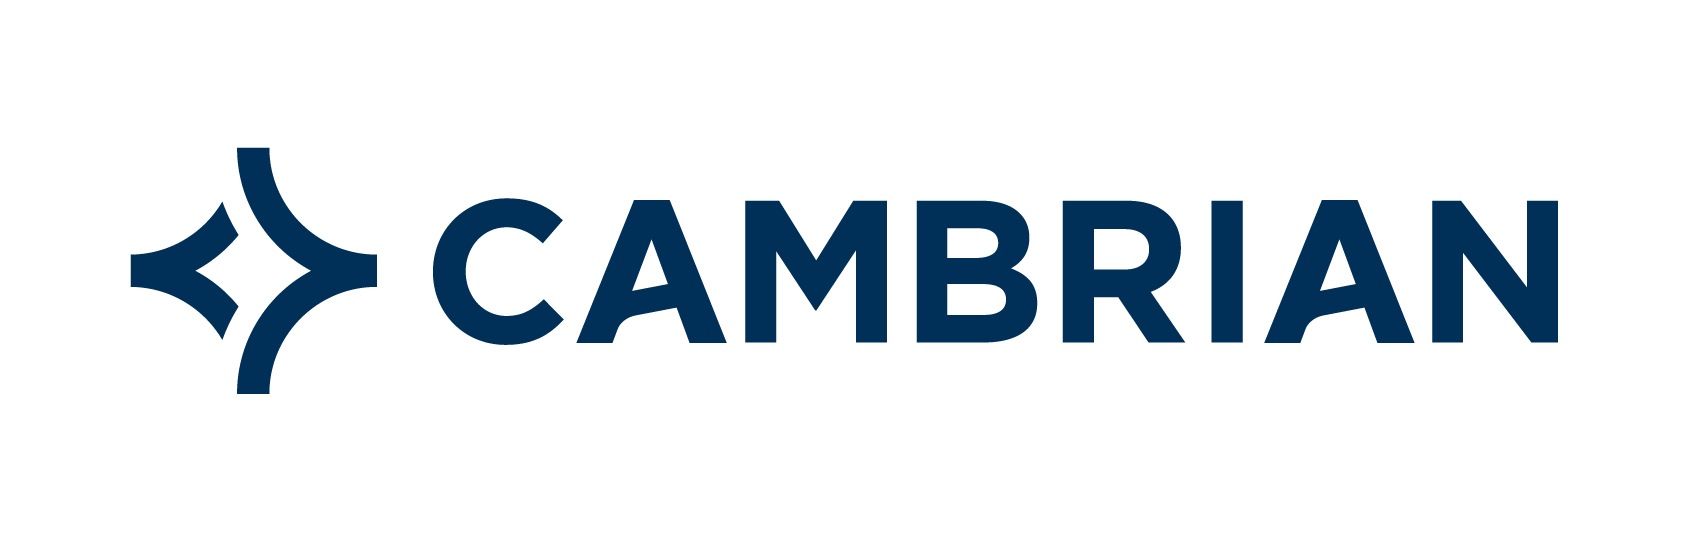 Cambrian navy logo